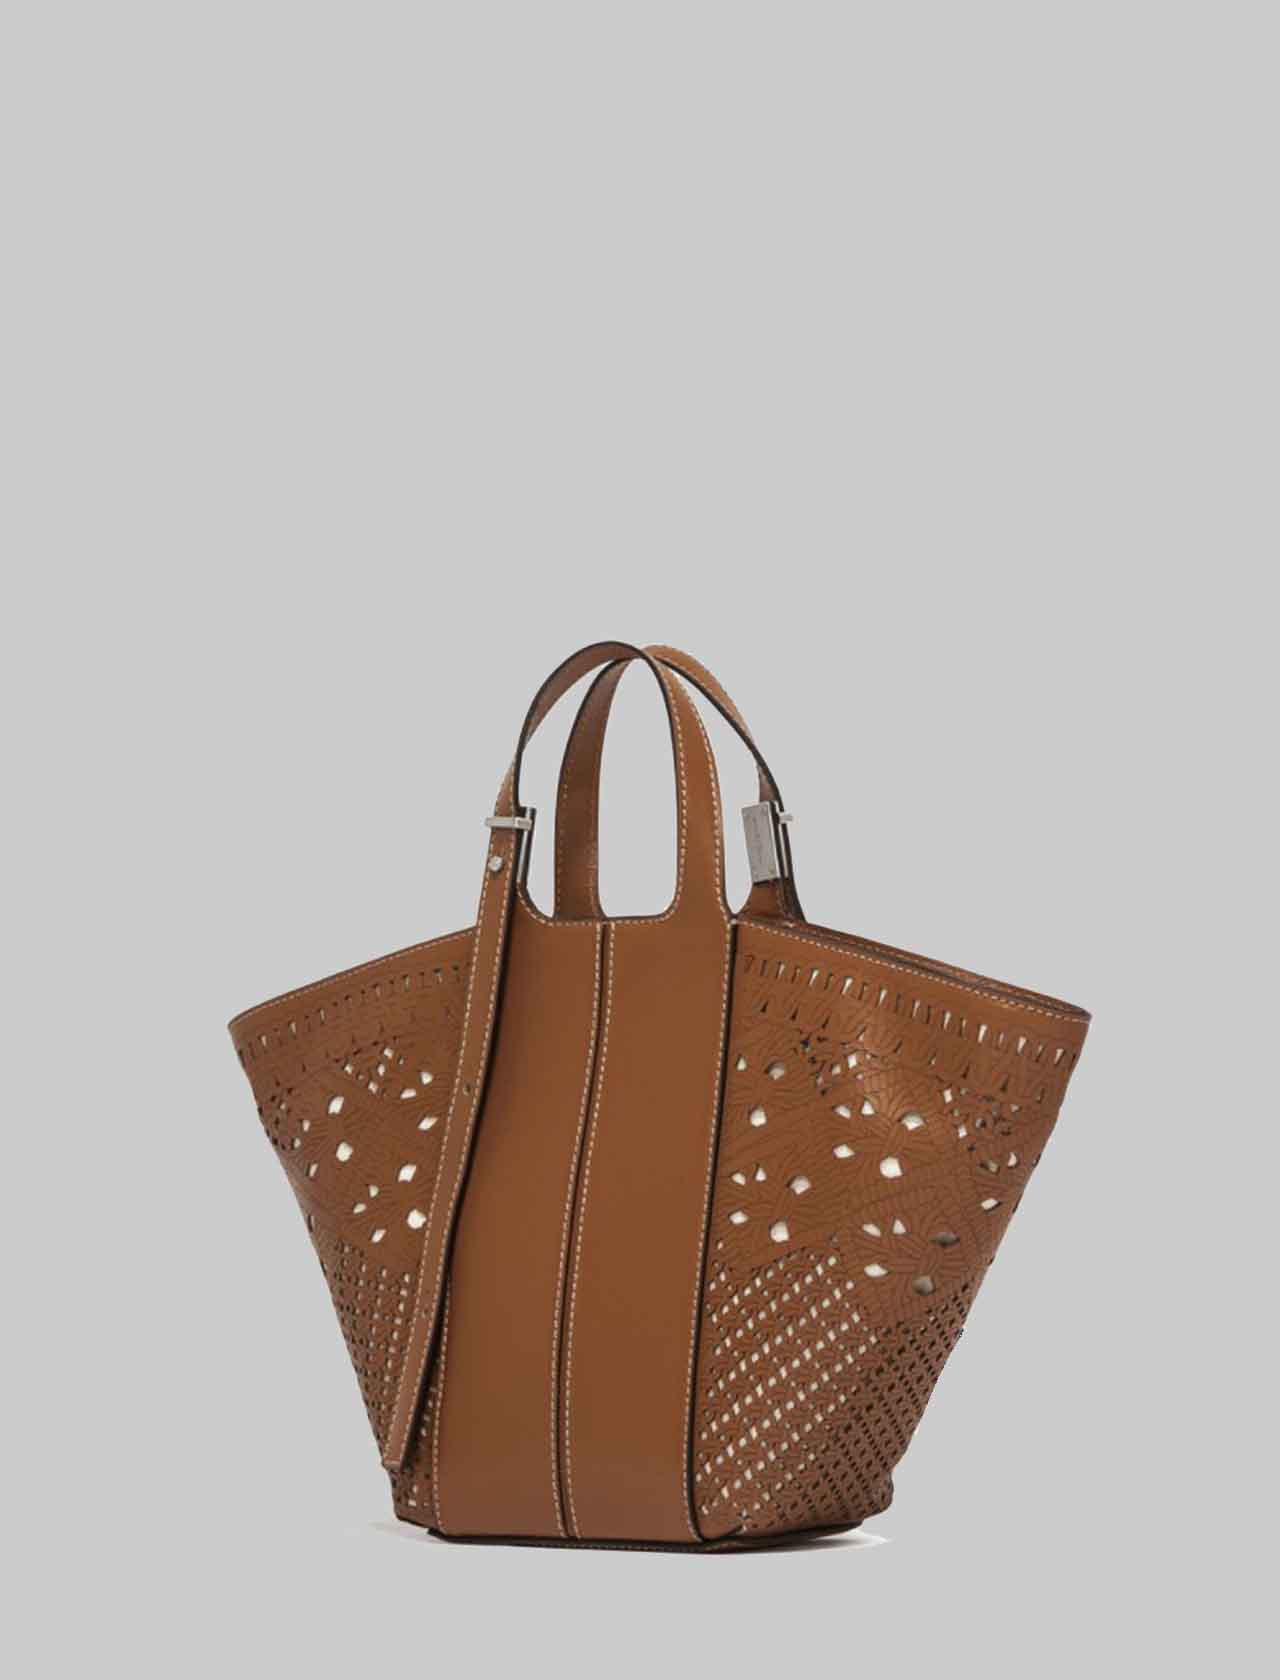 Mini Diletta Woman Bag In Tan Leather With Adjustable Handles Gianni Chiarini | Bags and backpacks | BS8595206